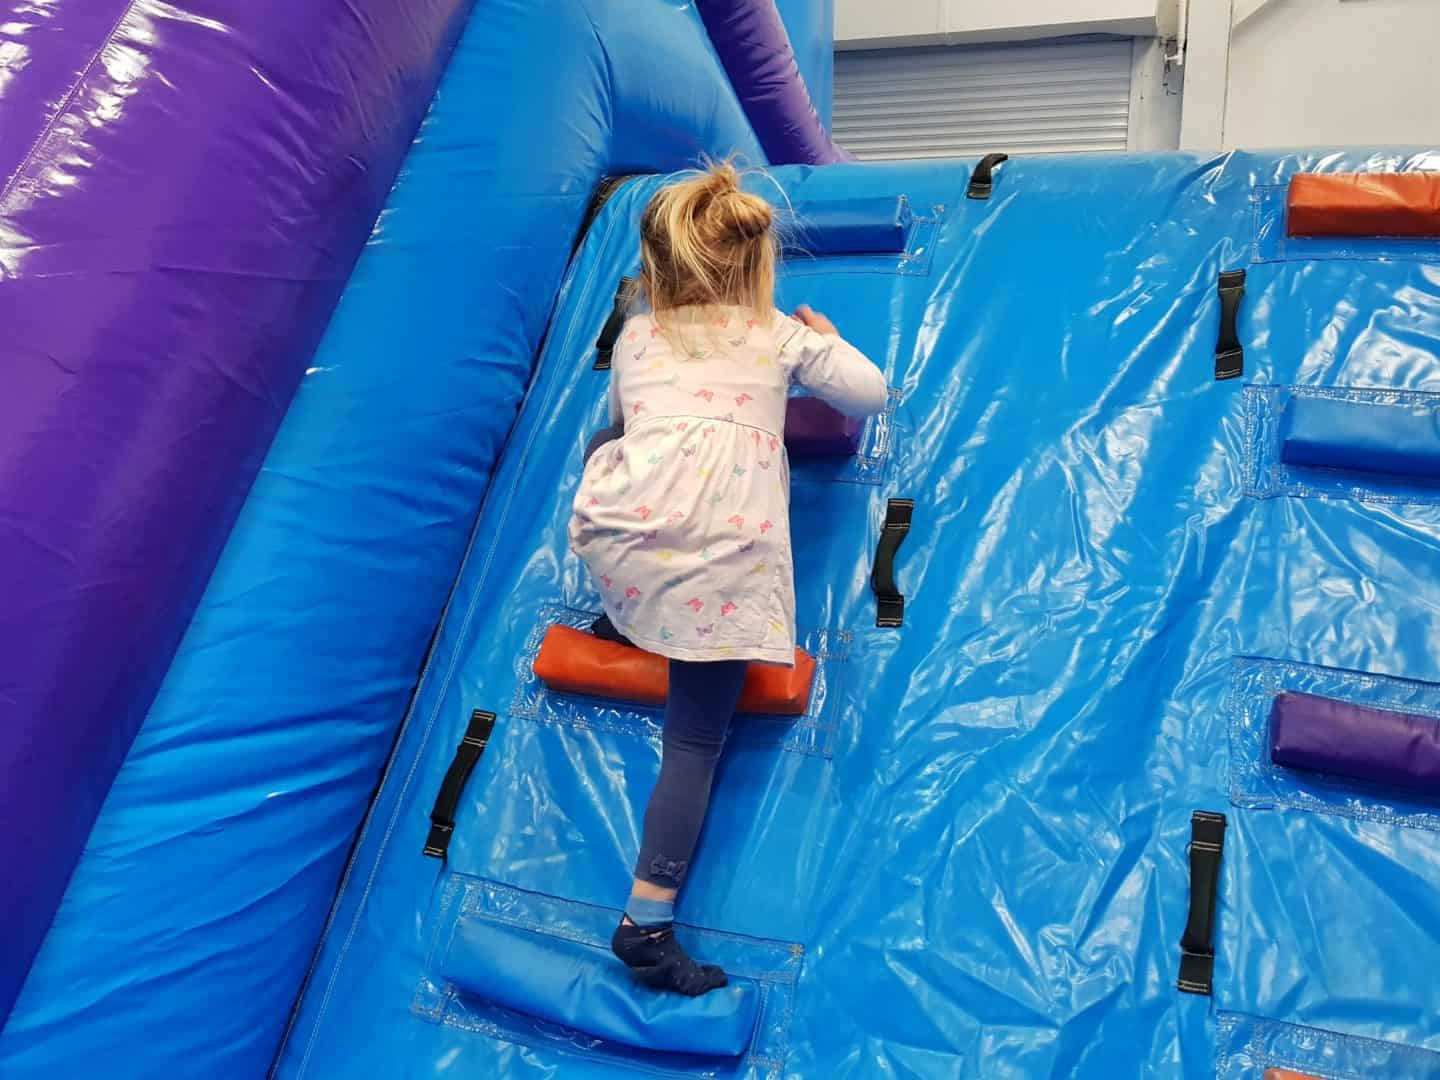 Inflata Nation Birmingham girl climbing on obstacle course